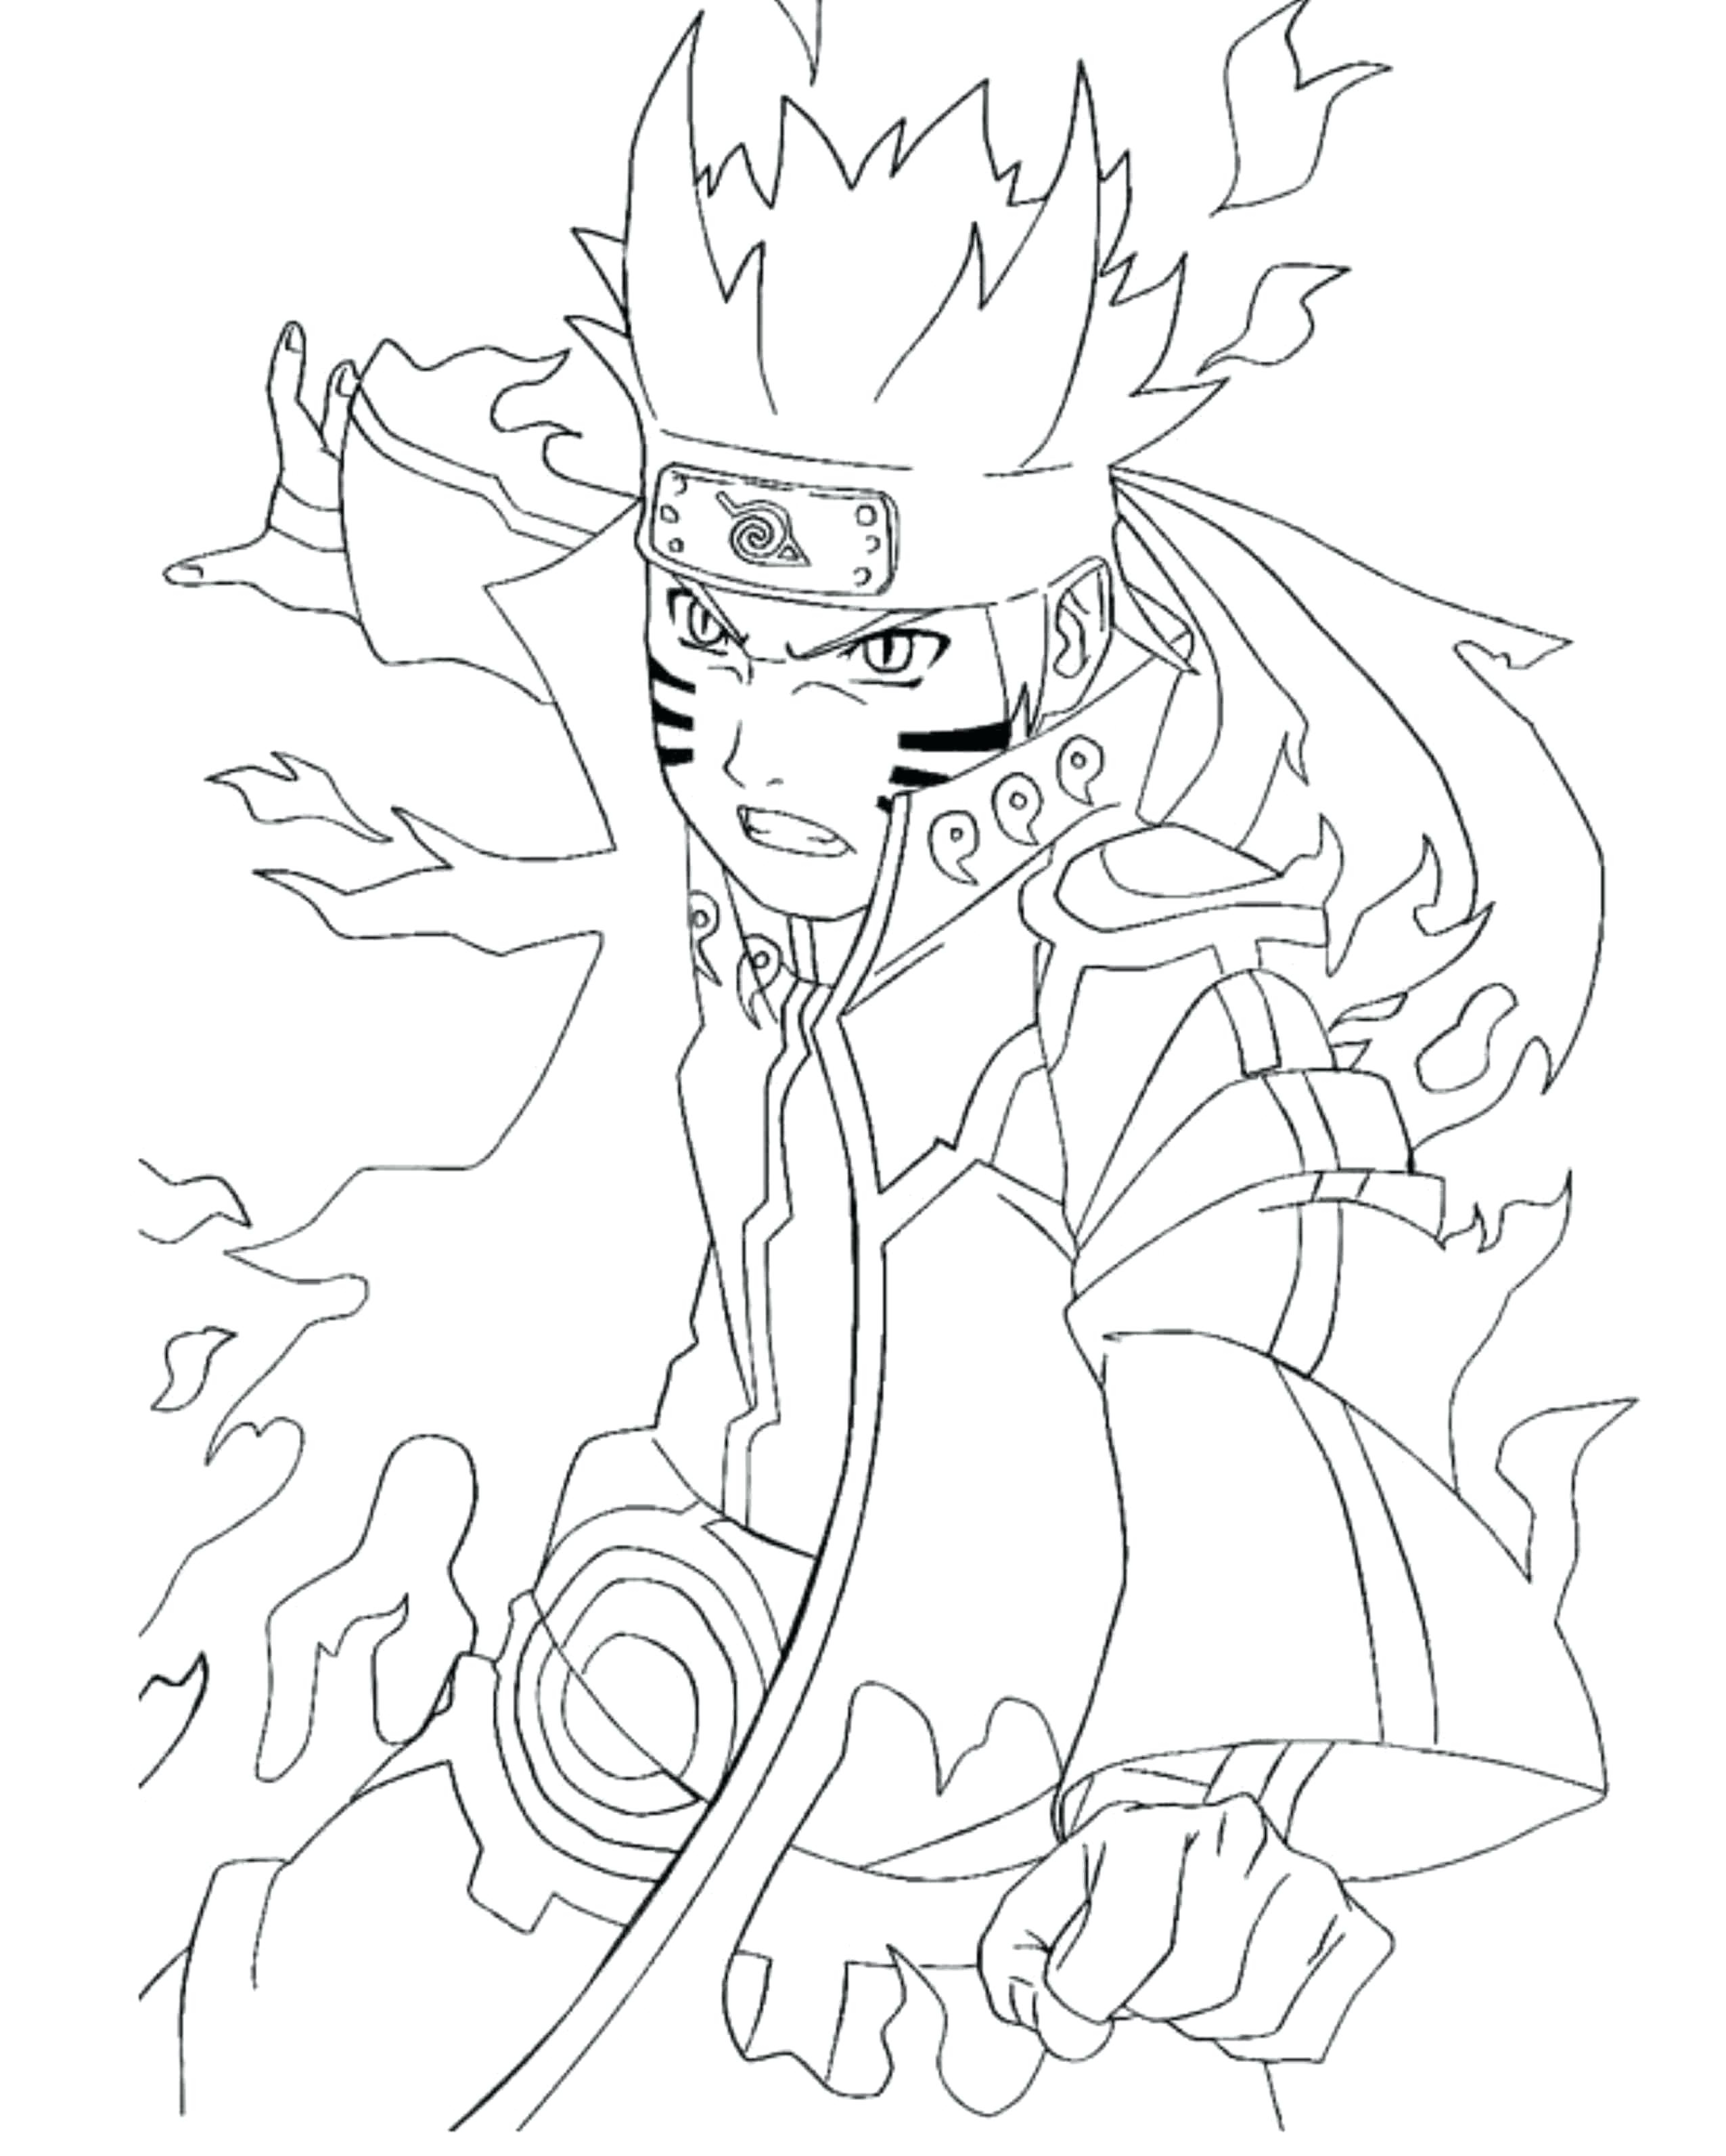 Naruto Vs Sasuke Drawing At Getdrawings | Free Download tout Naruto Coloriage